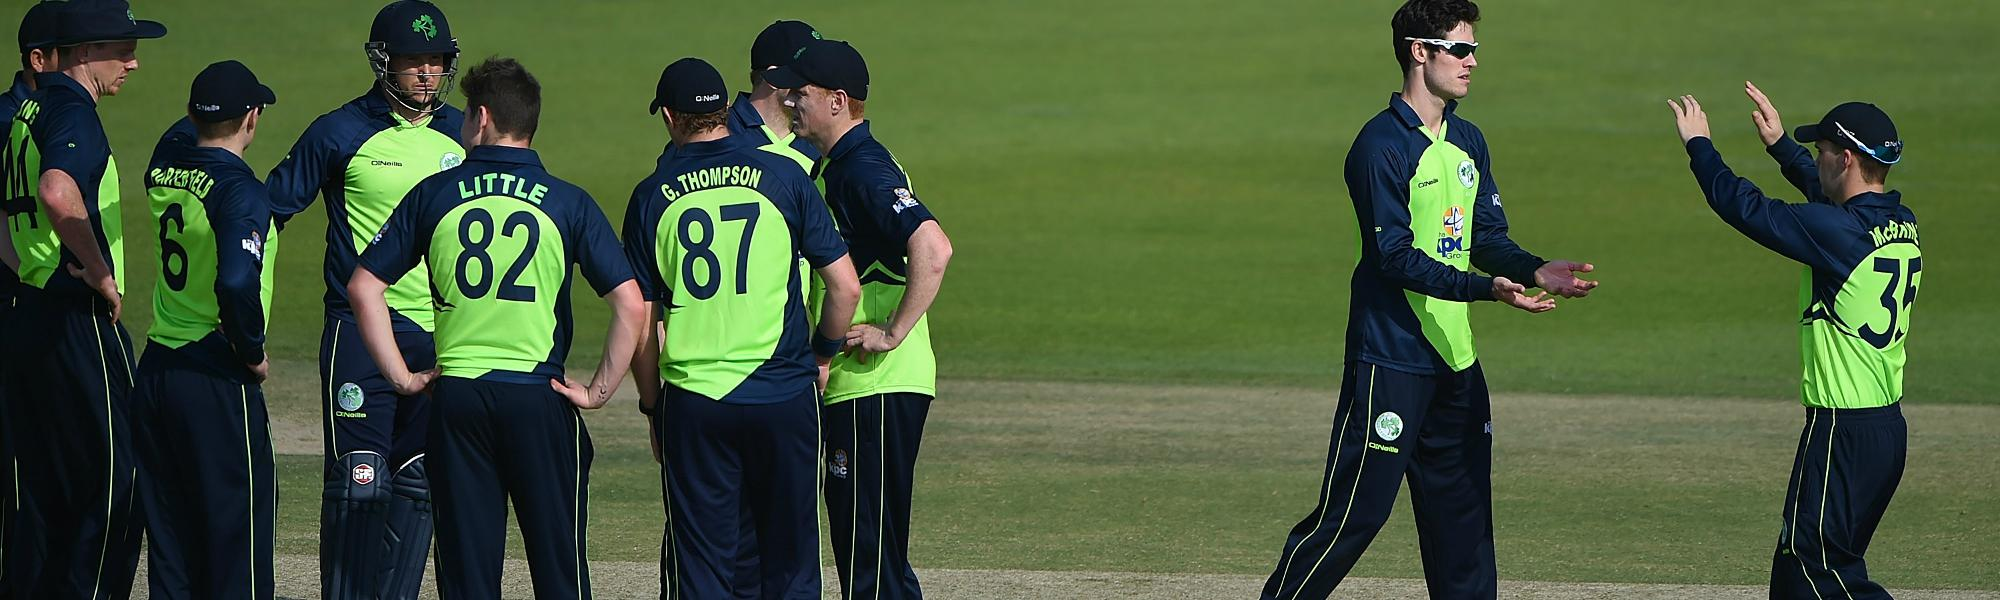 The good form of the batsmen and the success of the spinners should stand Ireland in good stead.